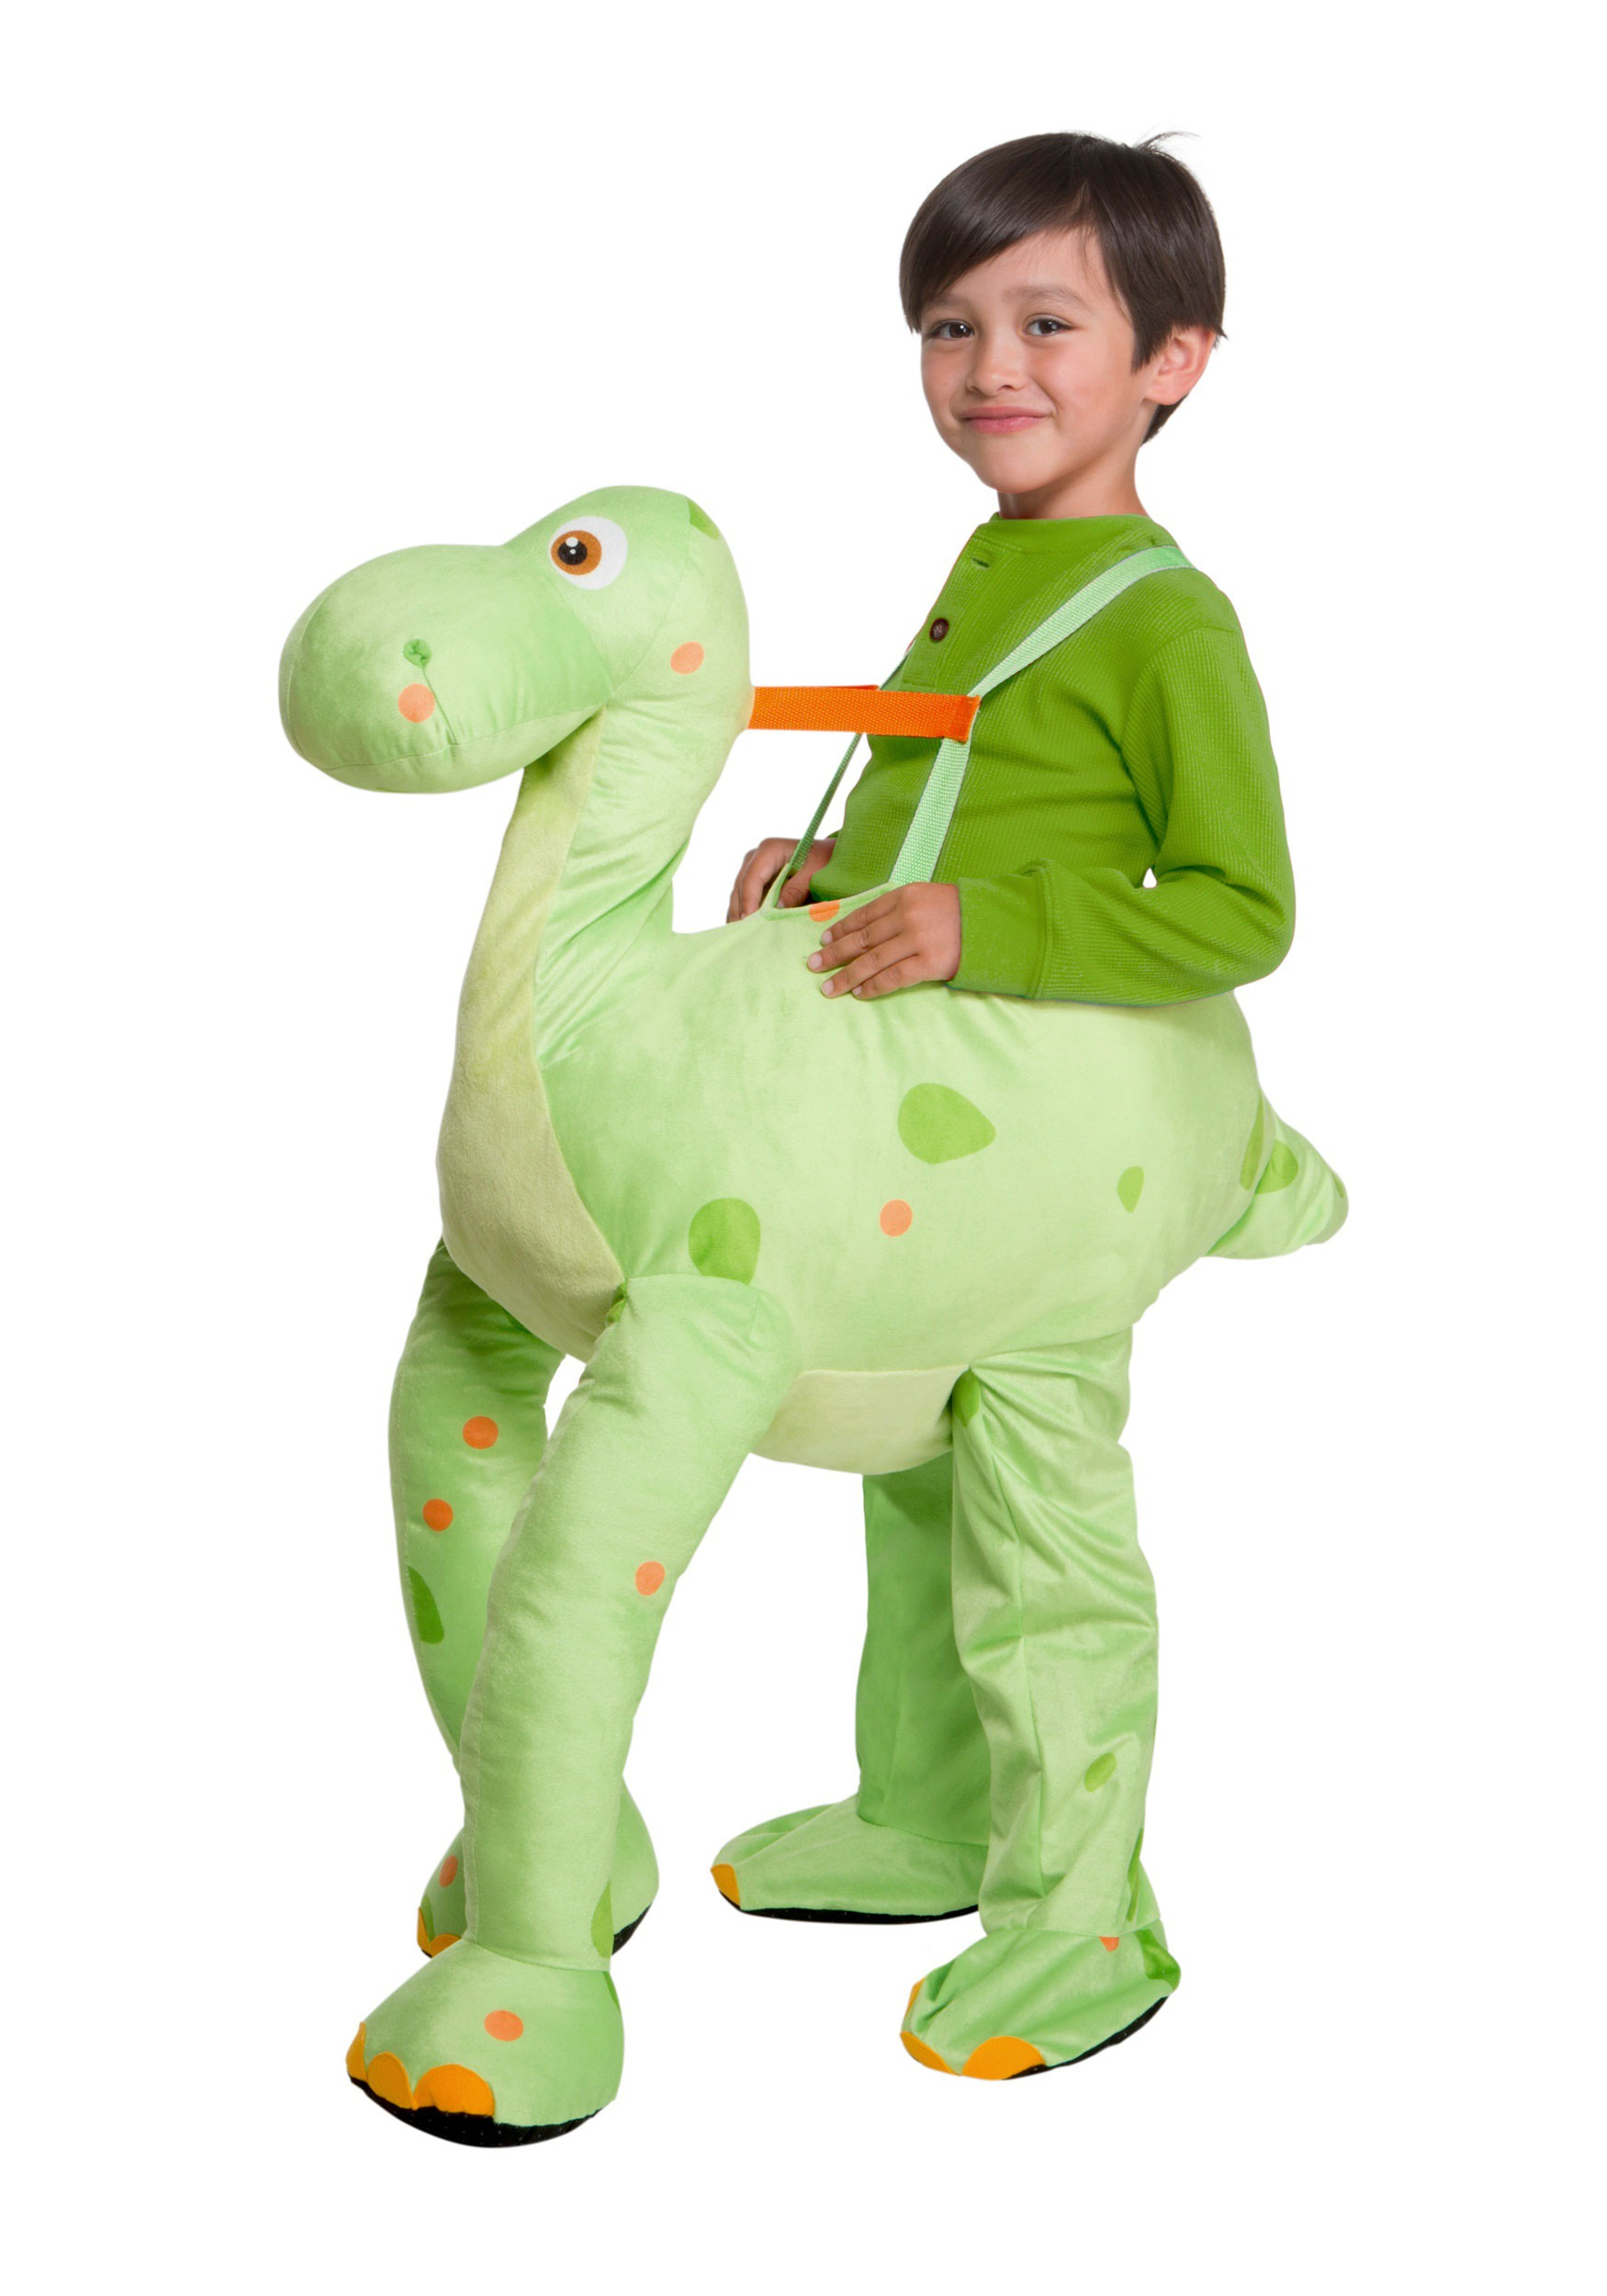 Green Dinosaur Toddler Costume  sc 1 st  Halloween Costumes & Dinosaur Costumes - Kids Toddler Dinosaur Halloween Costume